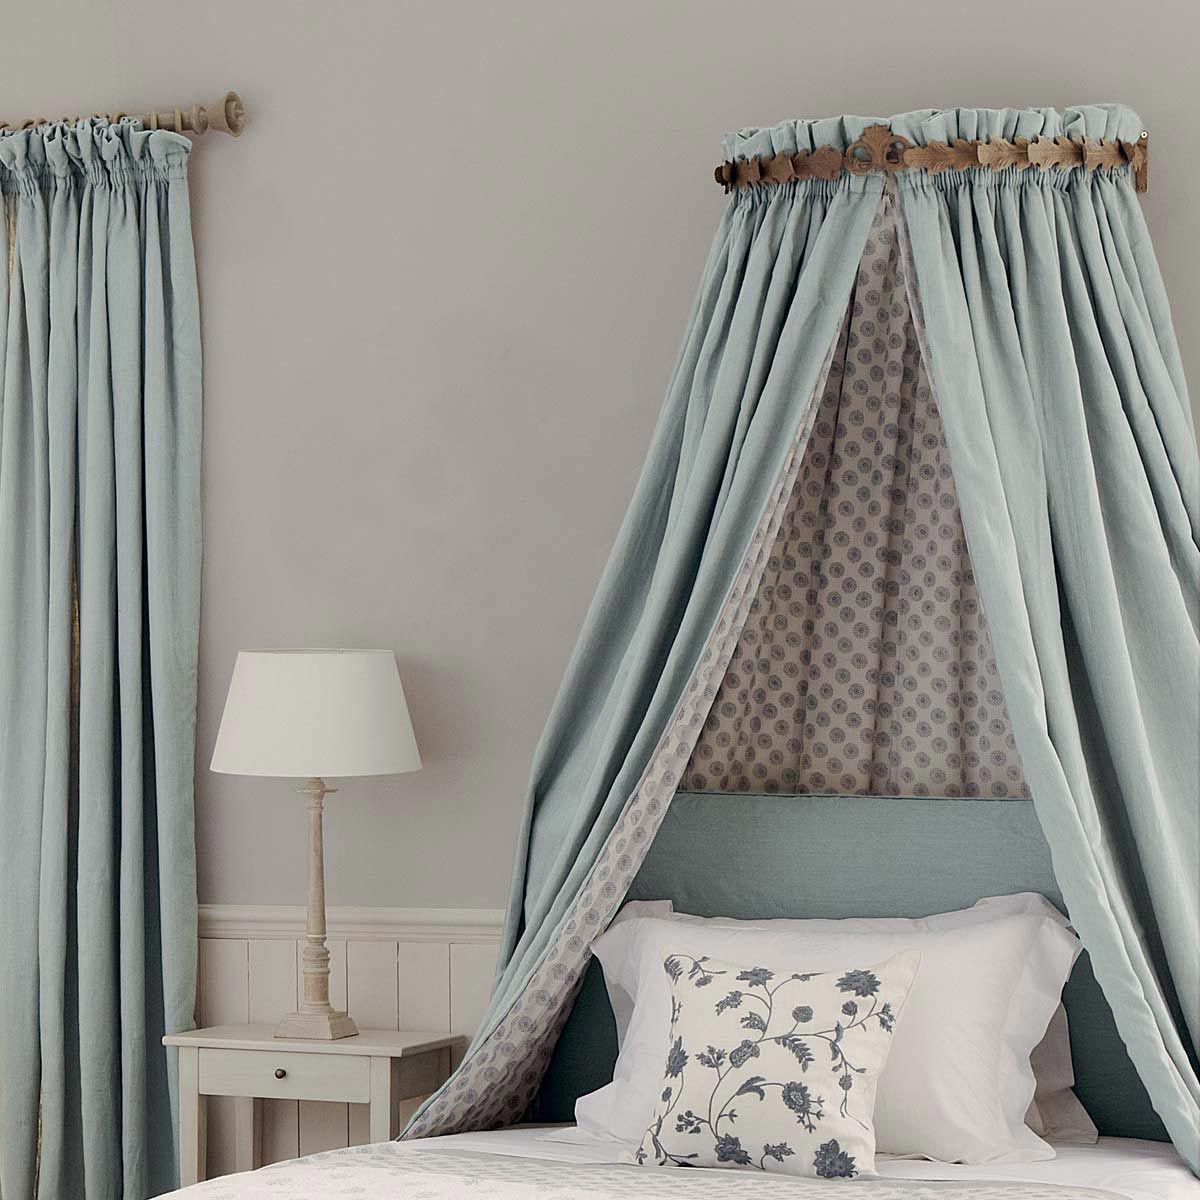 Canopy Bedroom Curtains: Bed Canopy - Laurel Half-Tester